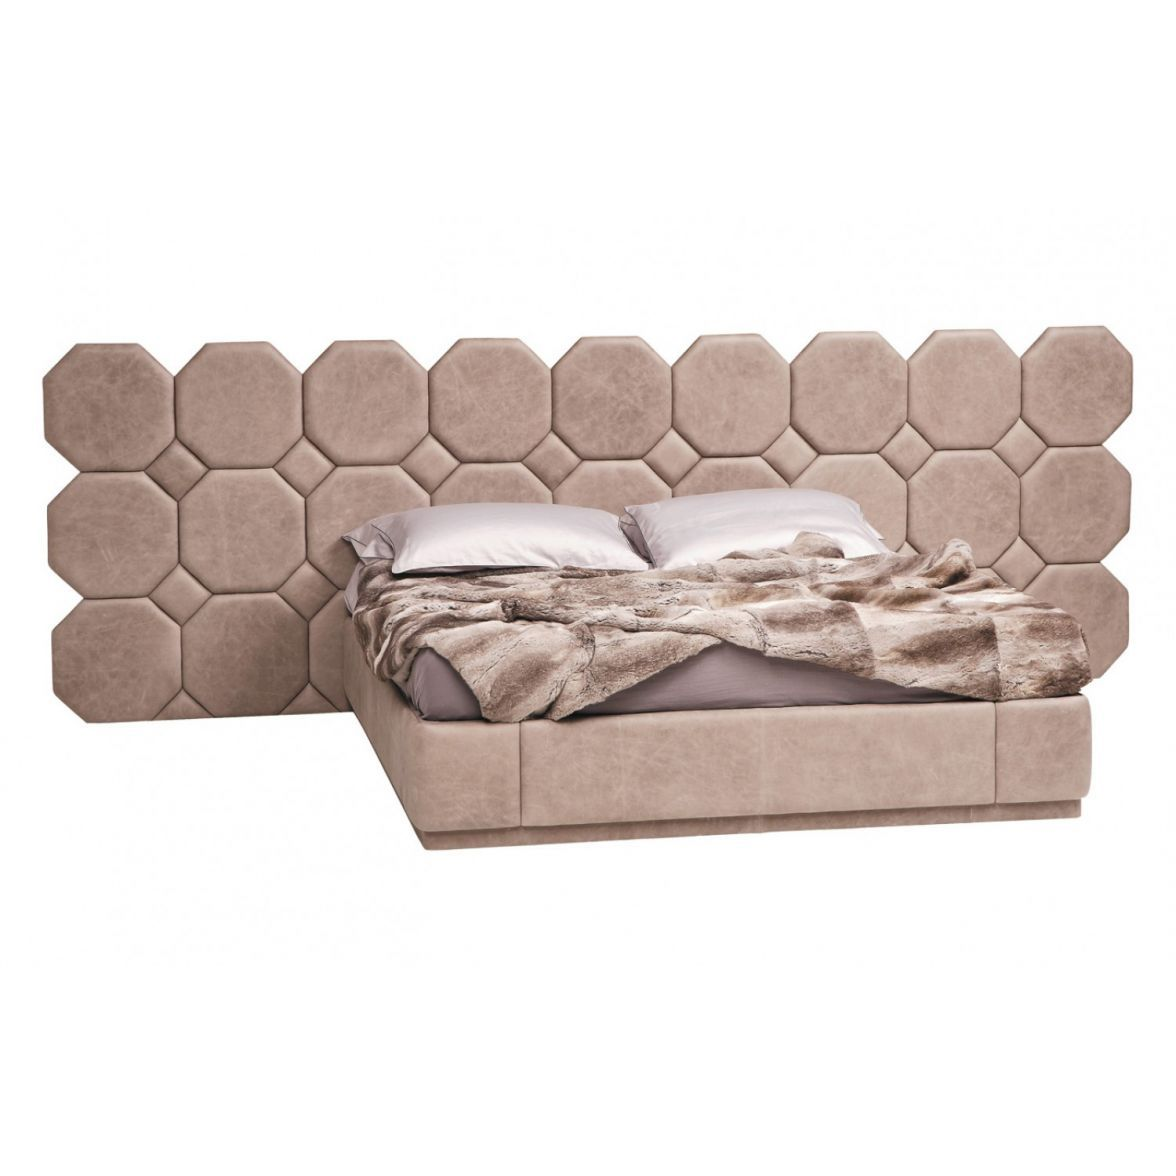 Pascal double bed